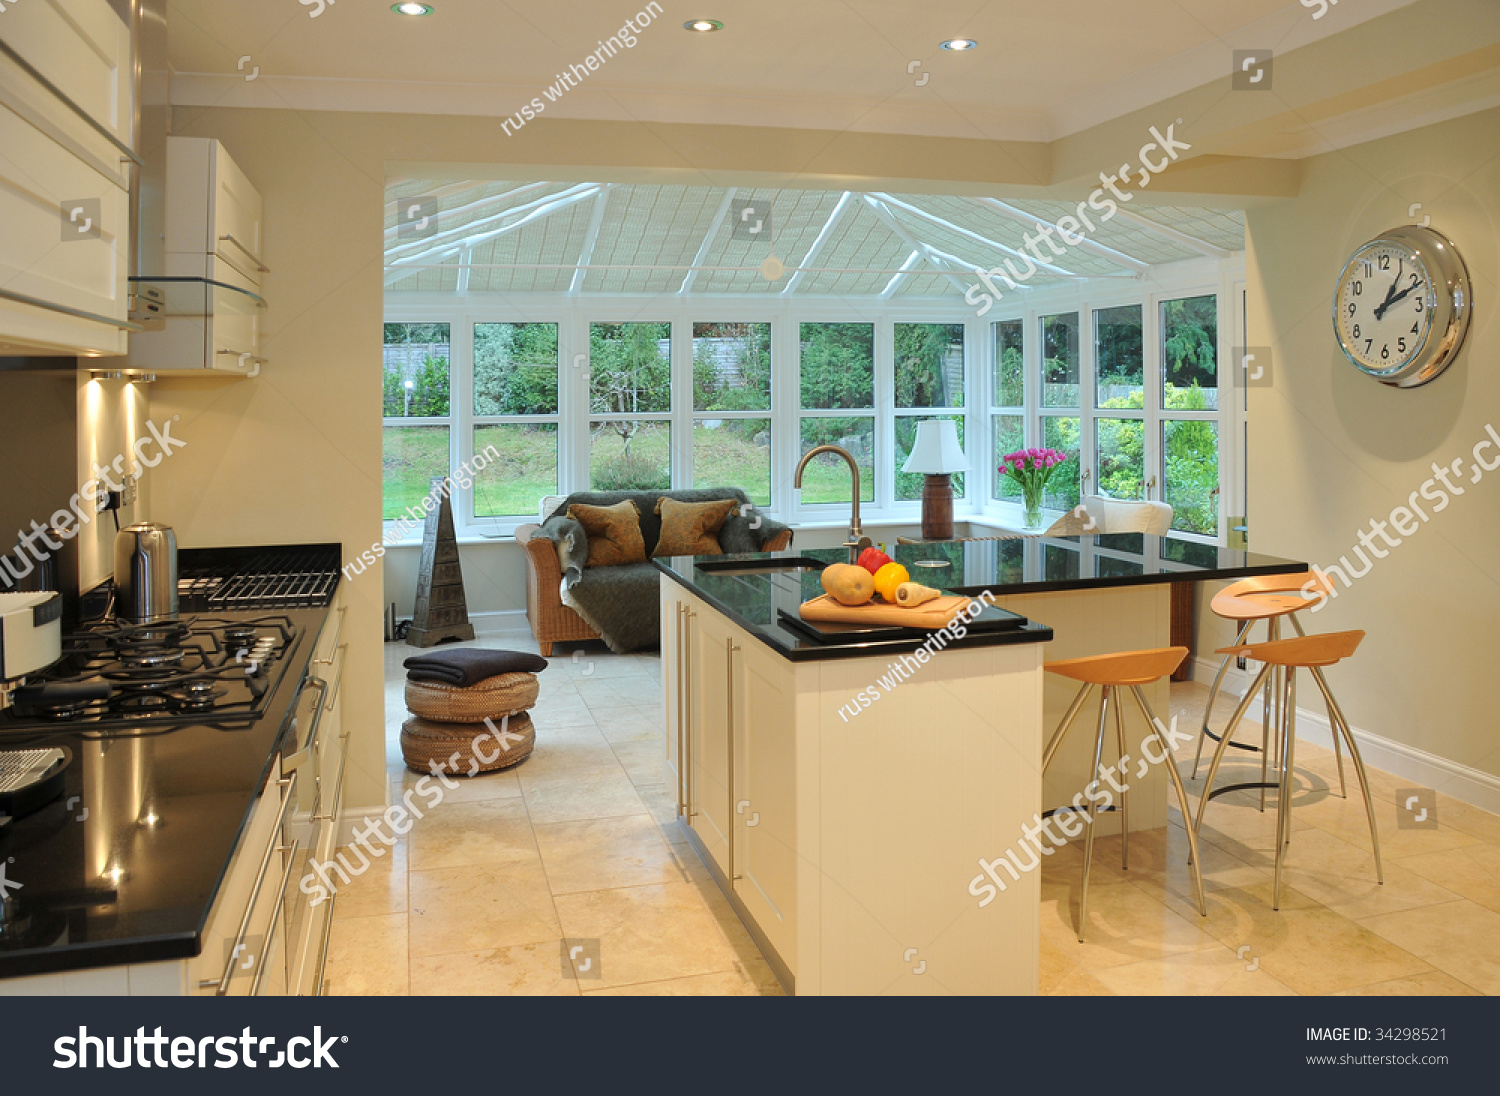 Kitchen Conservatory Interior Of A Modern Kitchen With Beyond A Conservatory And Garden